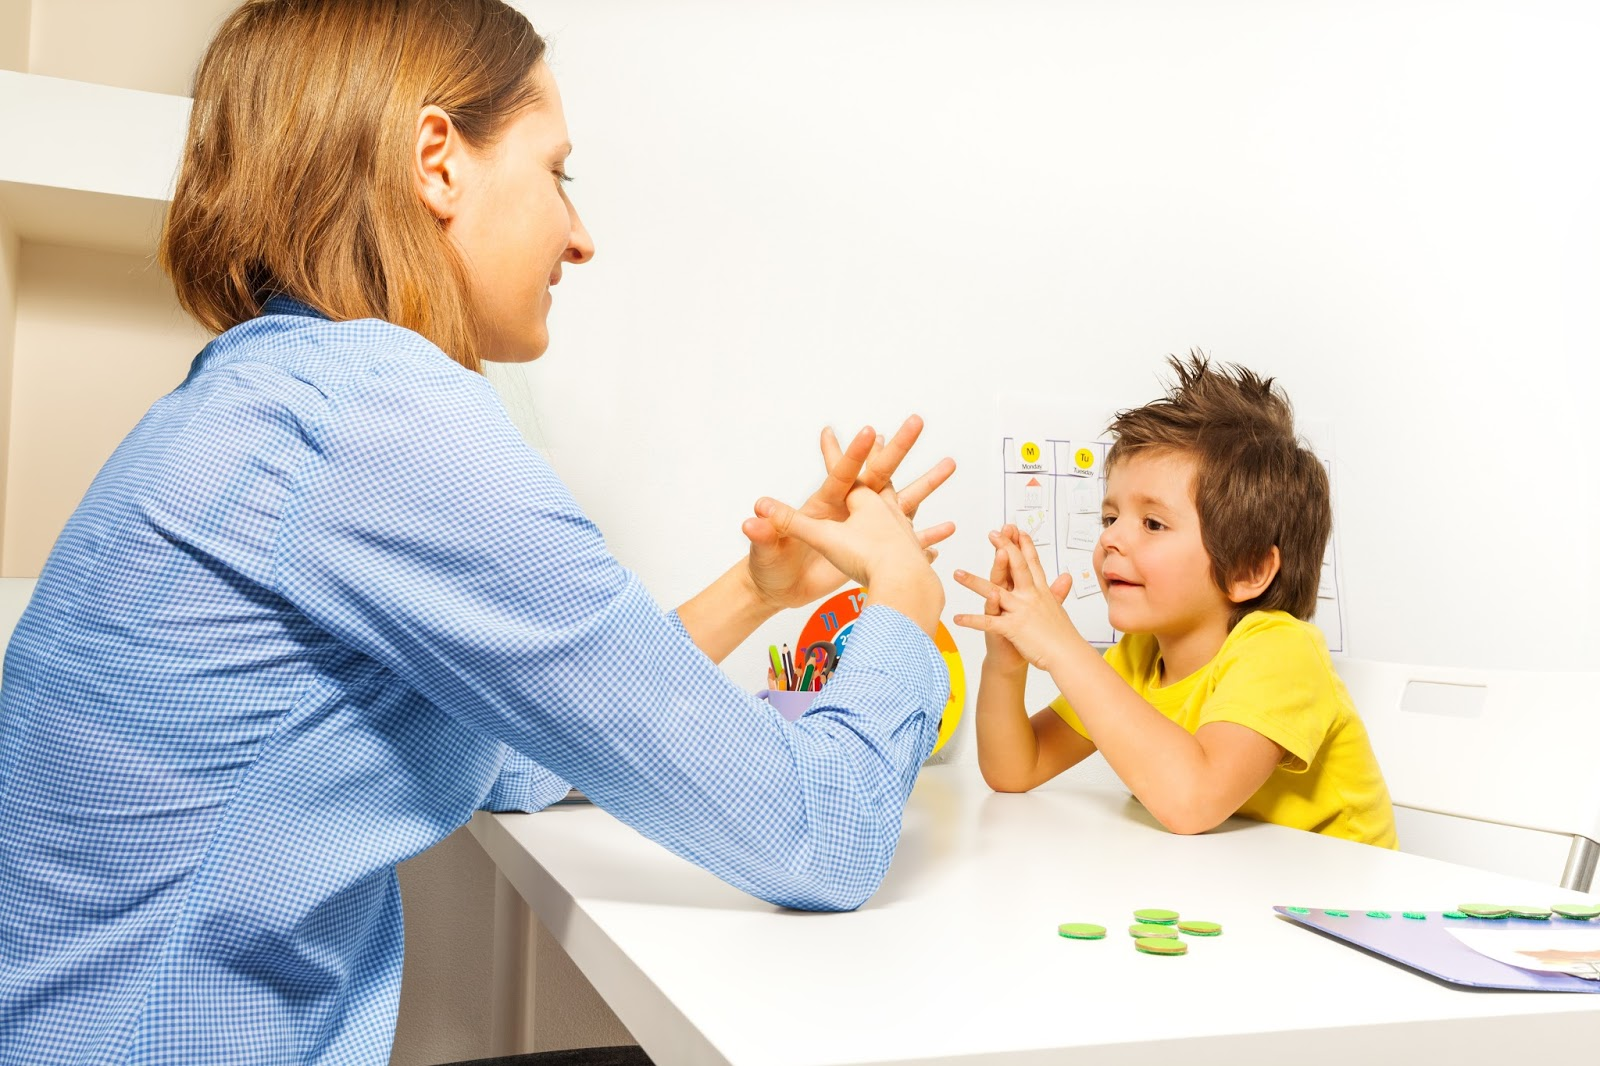 Image of therapist and child